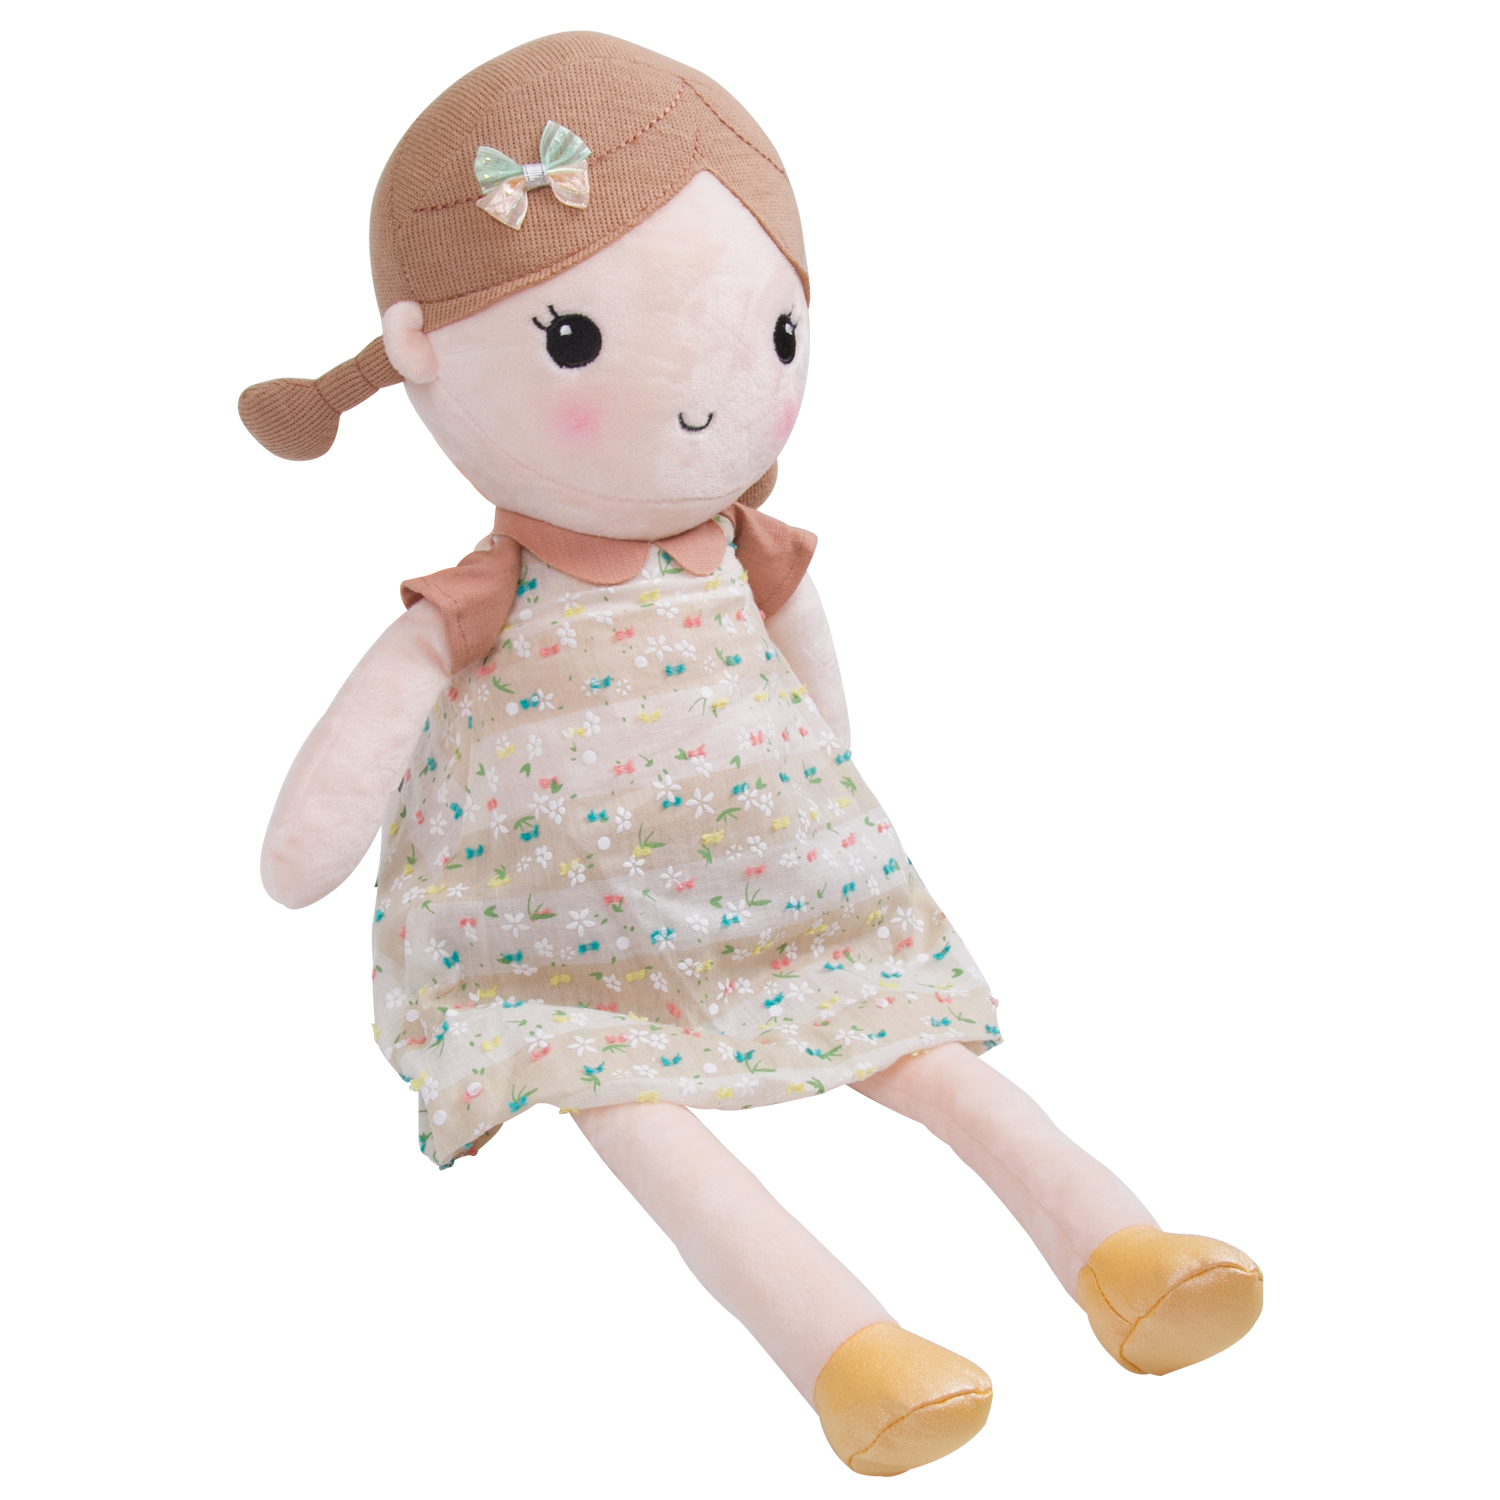 Goodsmann Lovely Spring Girl Wearing Floral Dress Baby Stuffed Cloth Dolls Kids Huggable Plush Toys, Doll Girl Cuddly Soft Snuggle Play Toy(Brown Floral, L) 9922-0011-02